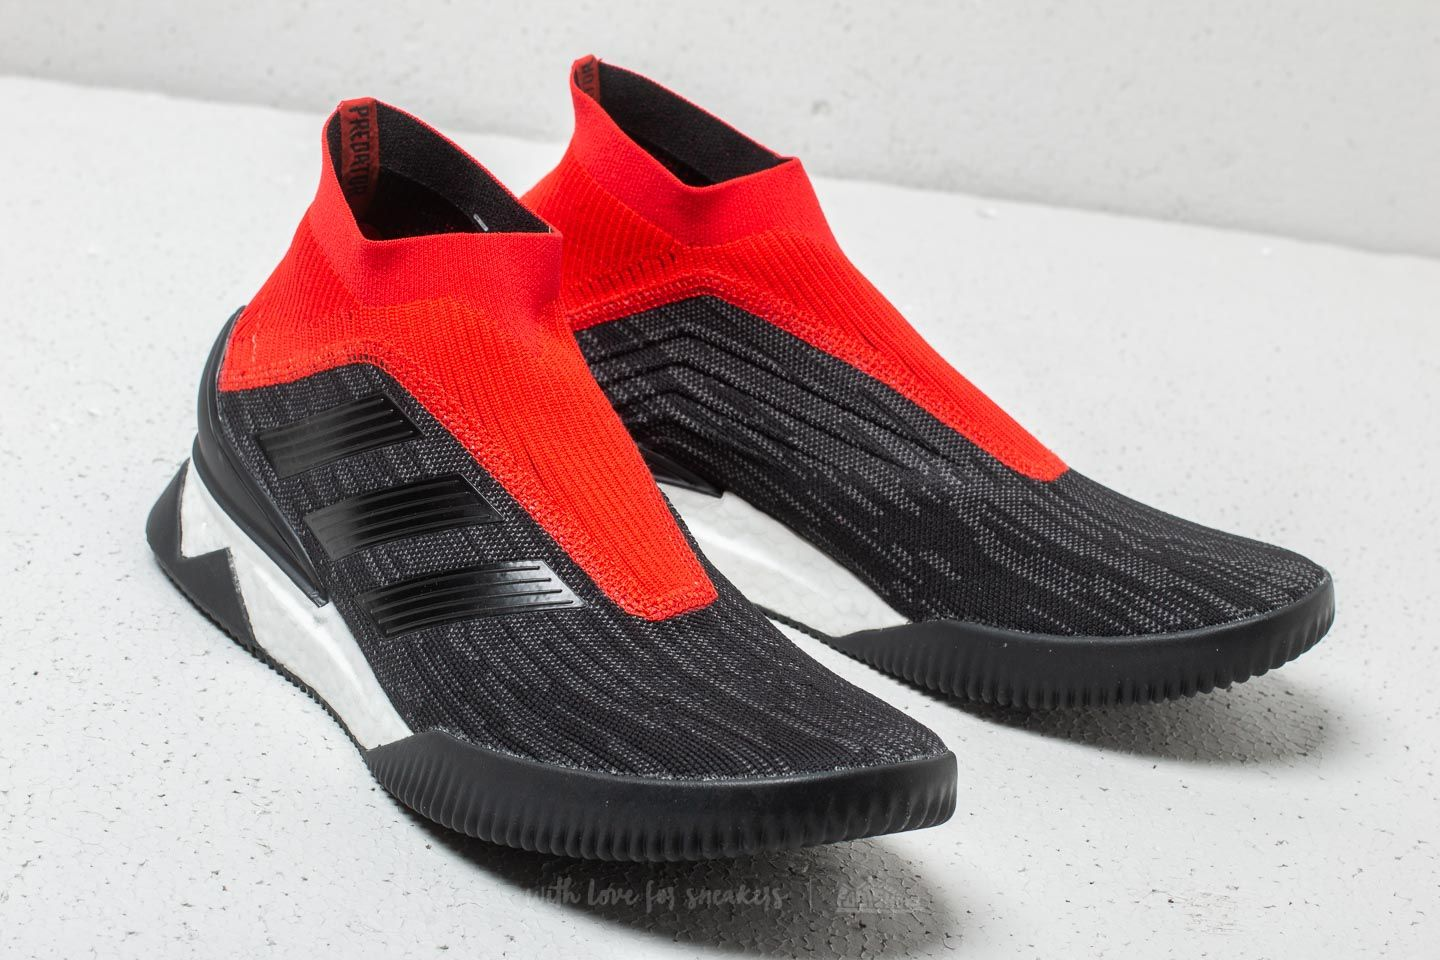 detailed look 364b0 47236 adidas PREDATOR TANGO 18+ TR Core Black  Core Black  Red at a great